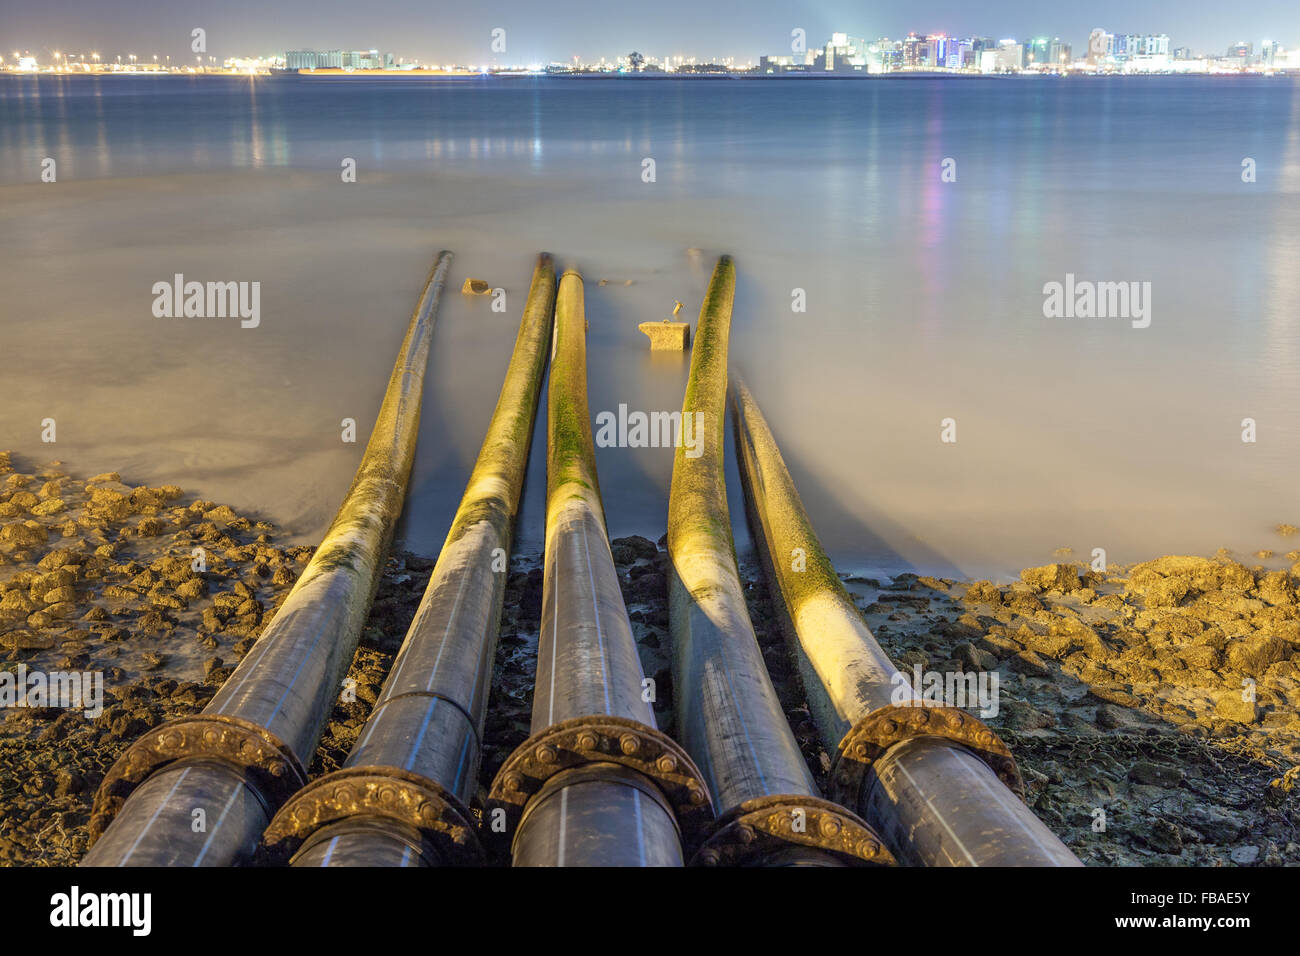 Sewage pipes going into the Persian Gulf in Doha, Qatar, Middle East - Stock Image